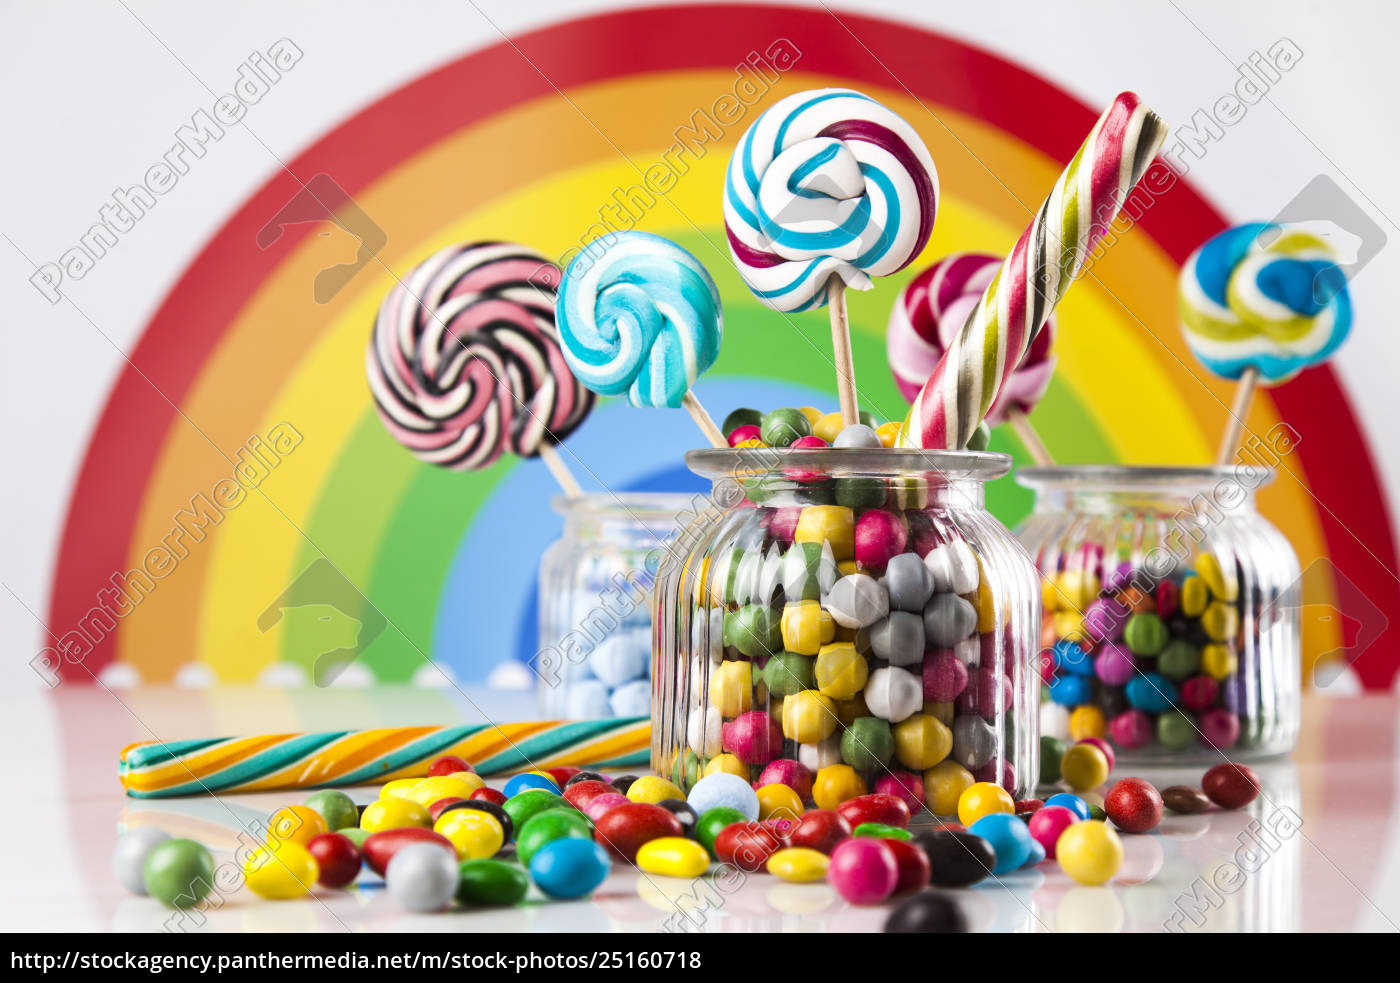 colorful, lollipops, and, different, colored, round - 25160718